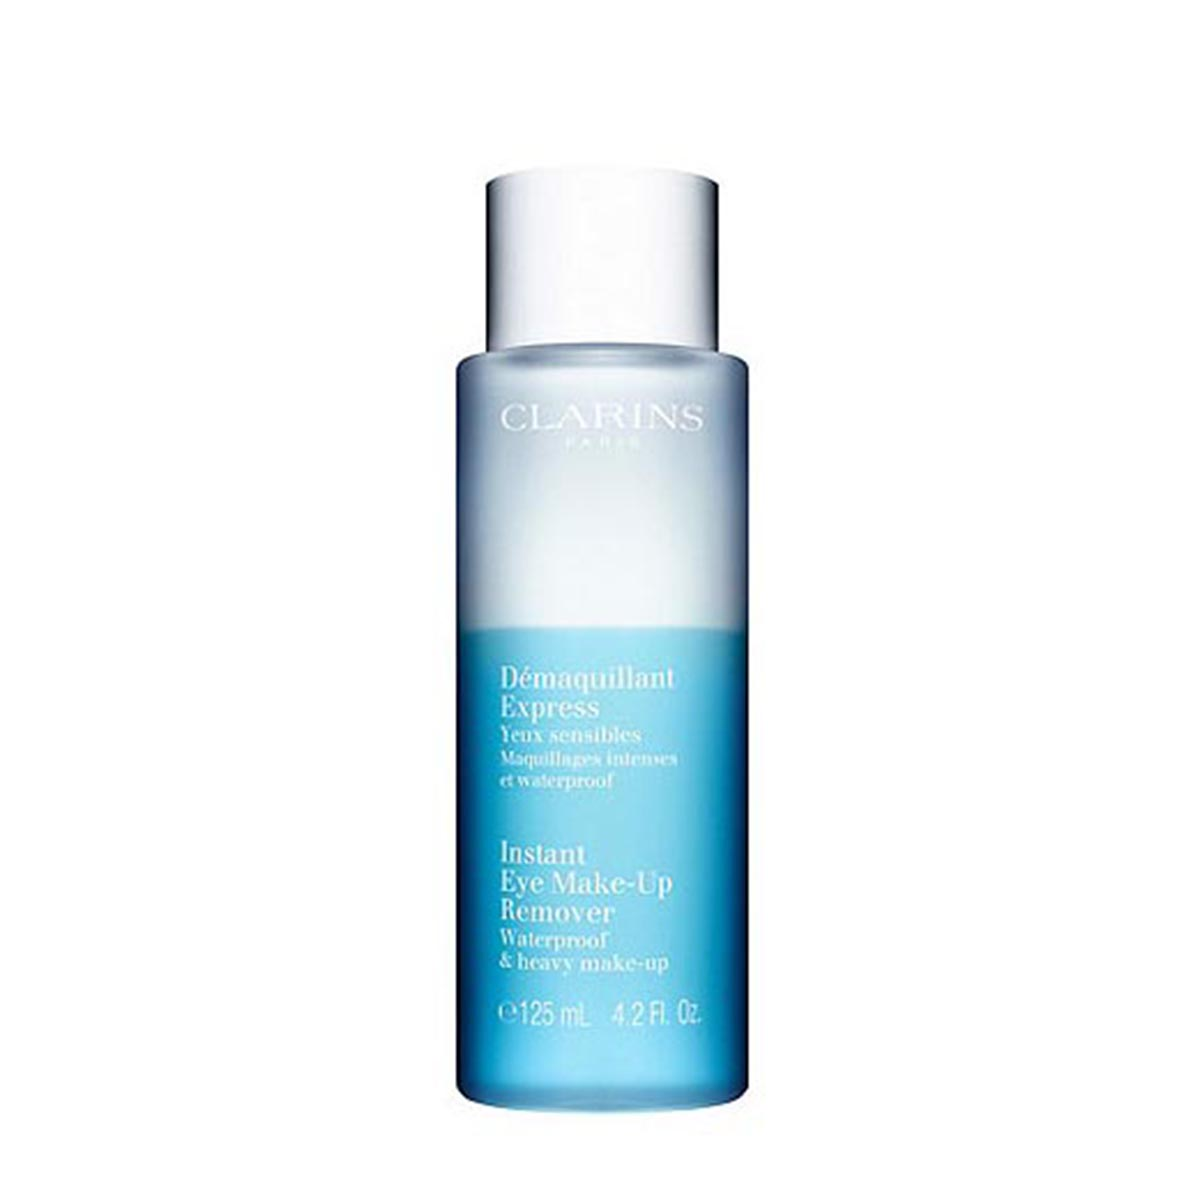 Clarins desmaquillante express waterproof yeux 125ml